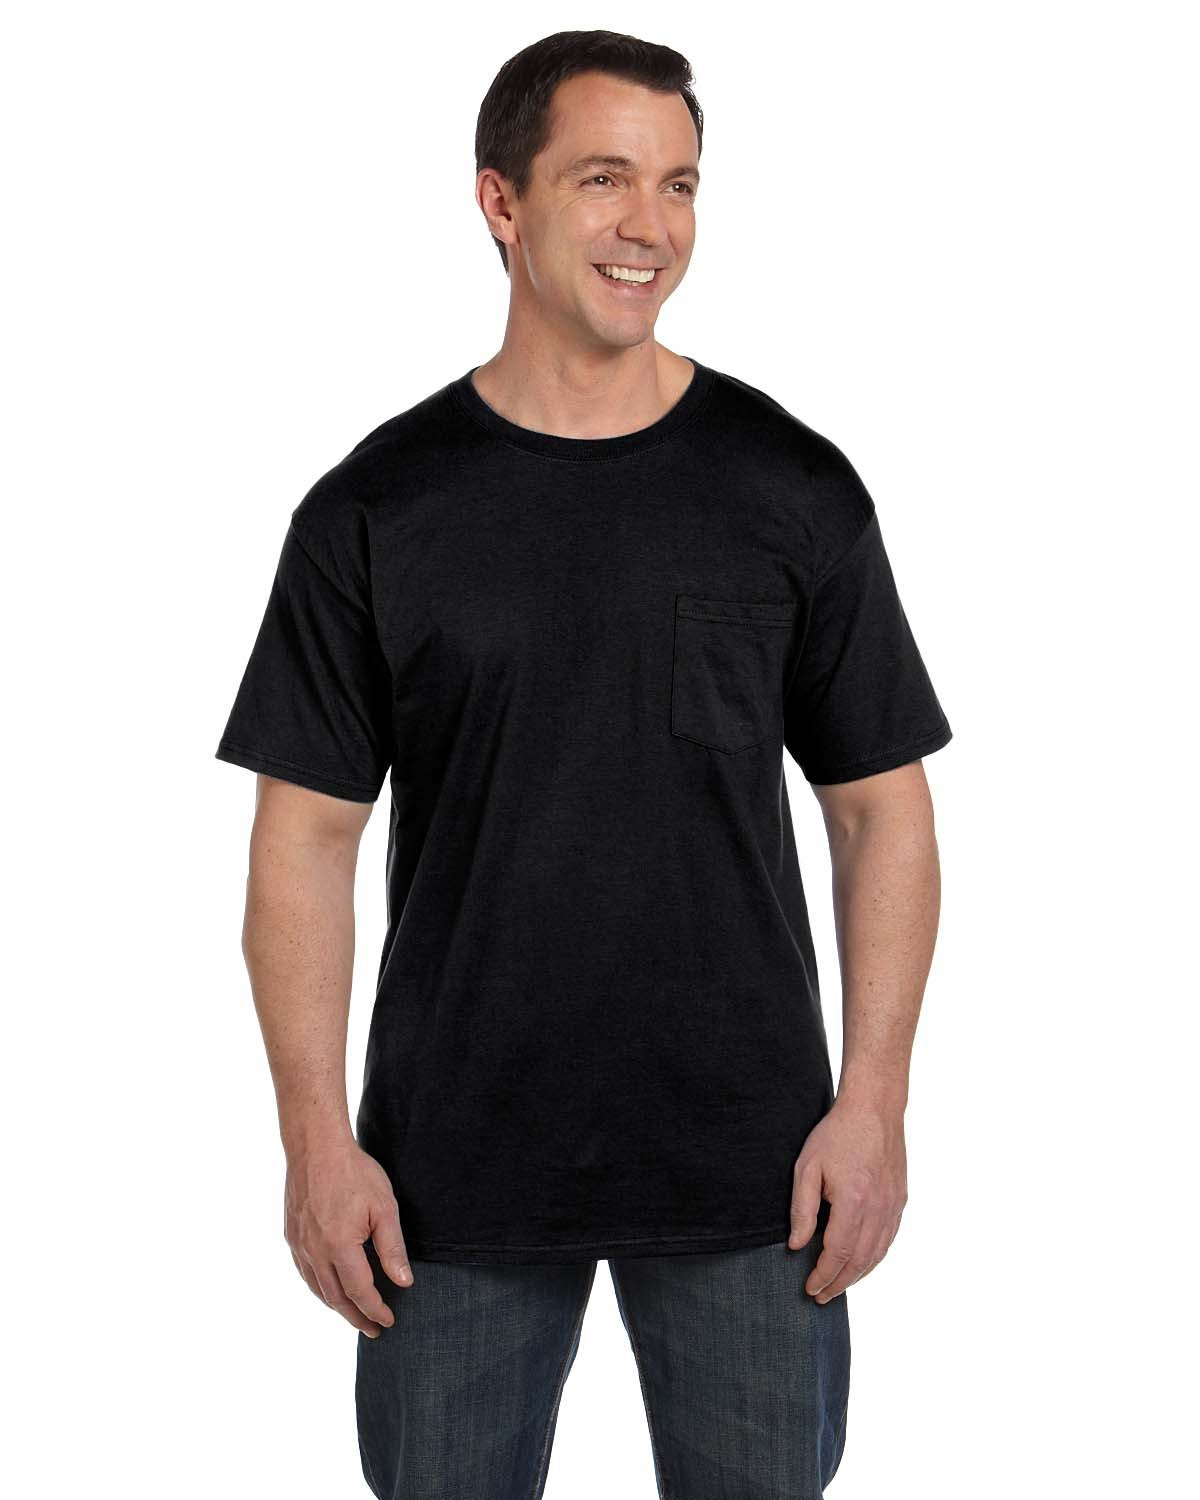 Hanes Adult Beefy-T® with Pocket BLACK